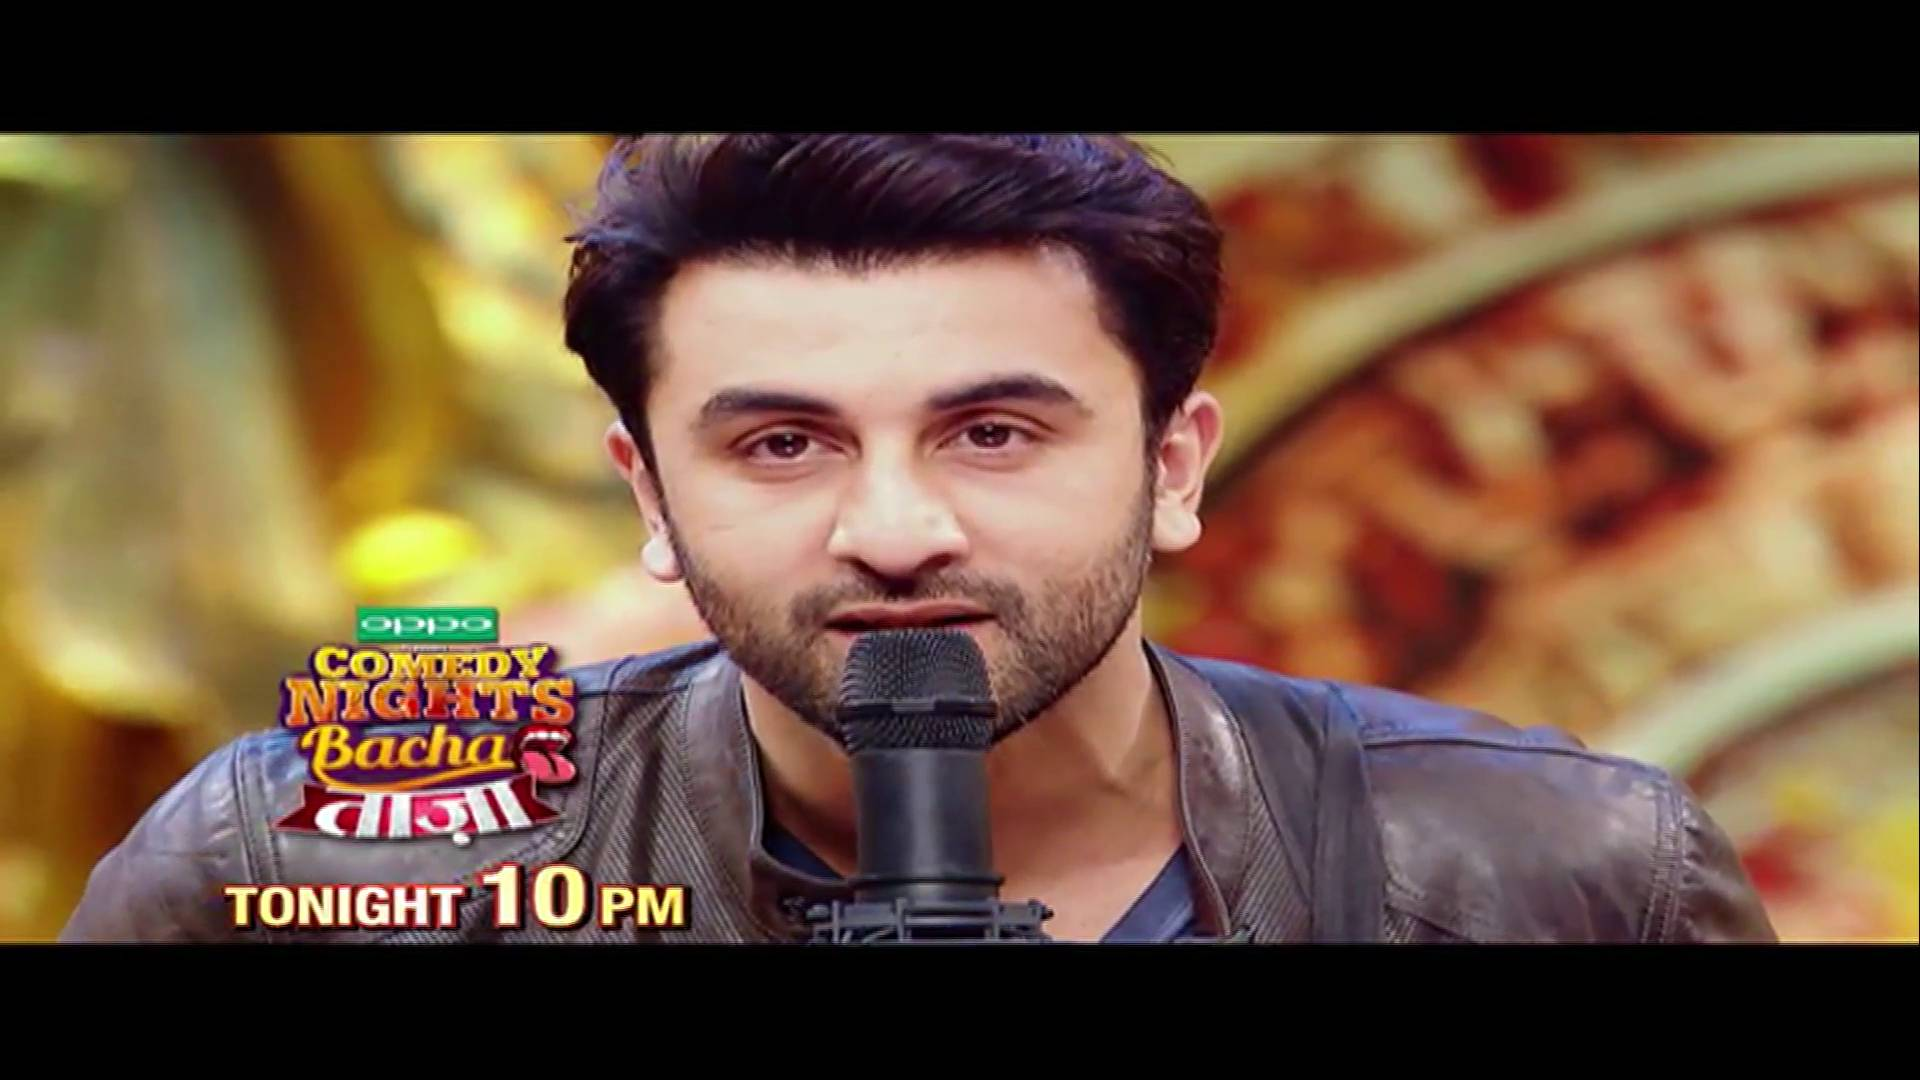 Paagalpan ki Hadh Paar with Ranbir Kapoor: Only on CNBT this